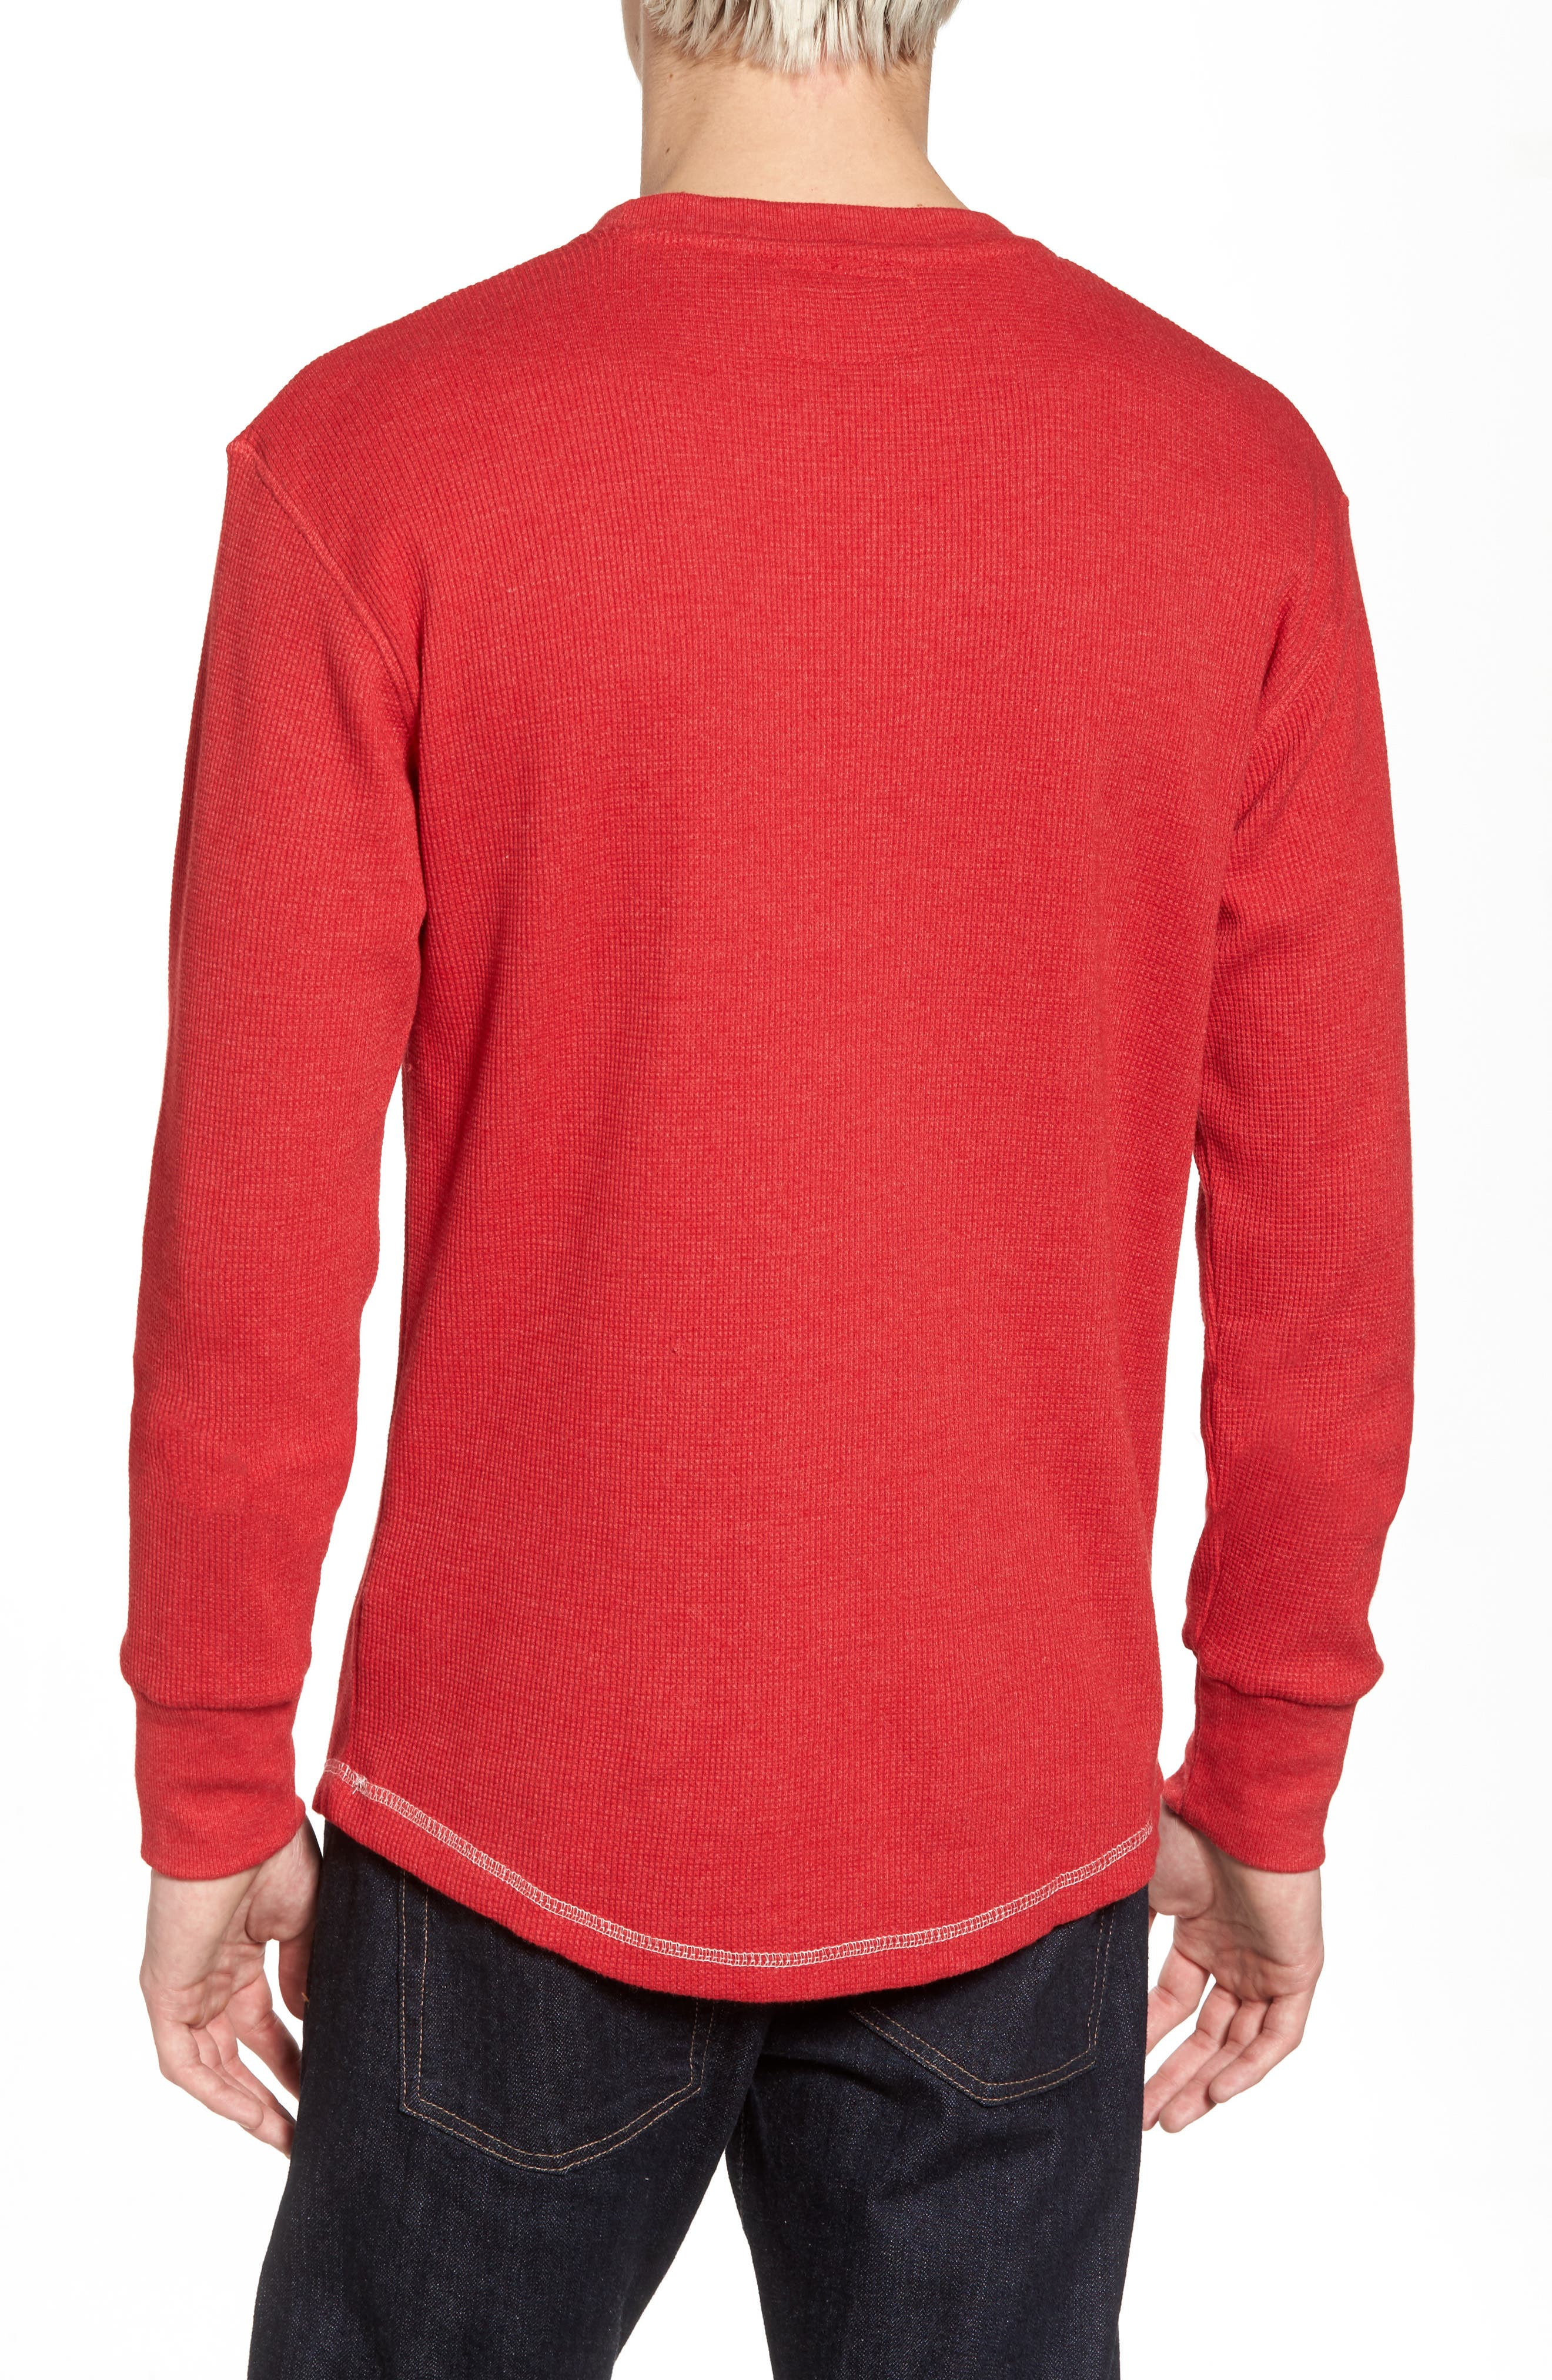 Detroit Red Wings Embroidered Long Sleeve Thermal Shirt,                             Alternate thumbnail 2, color,                             600